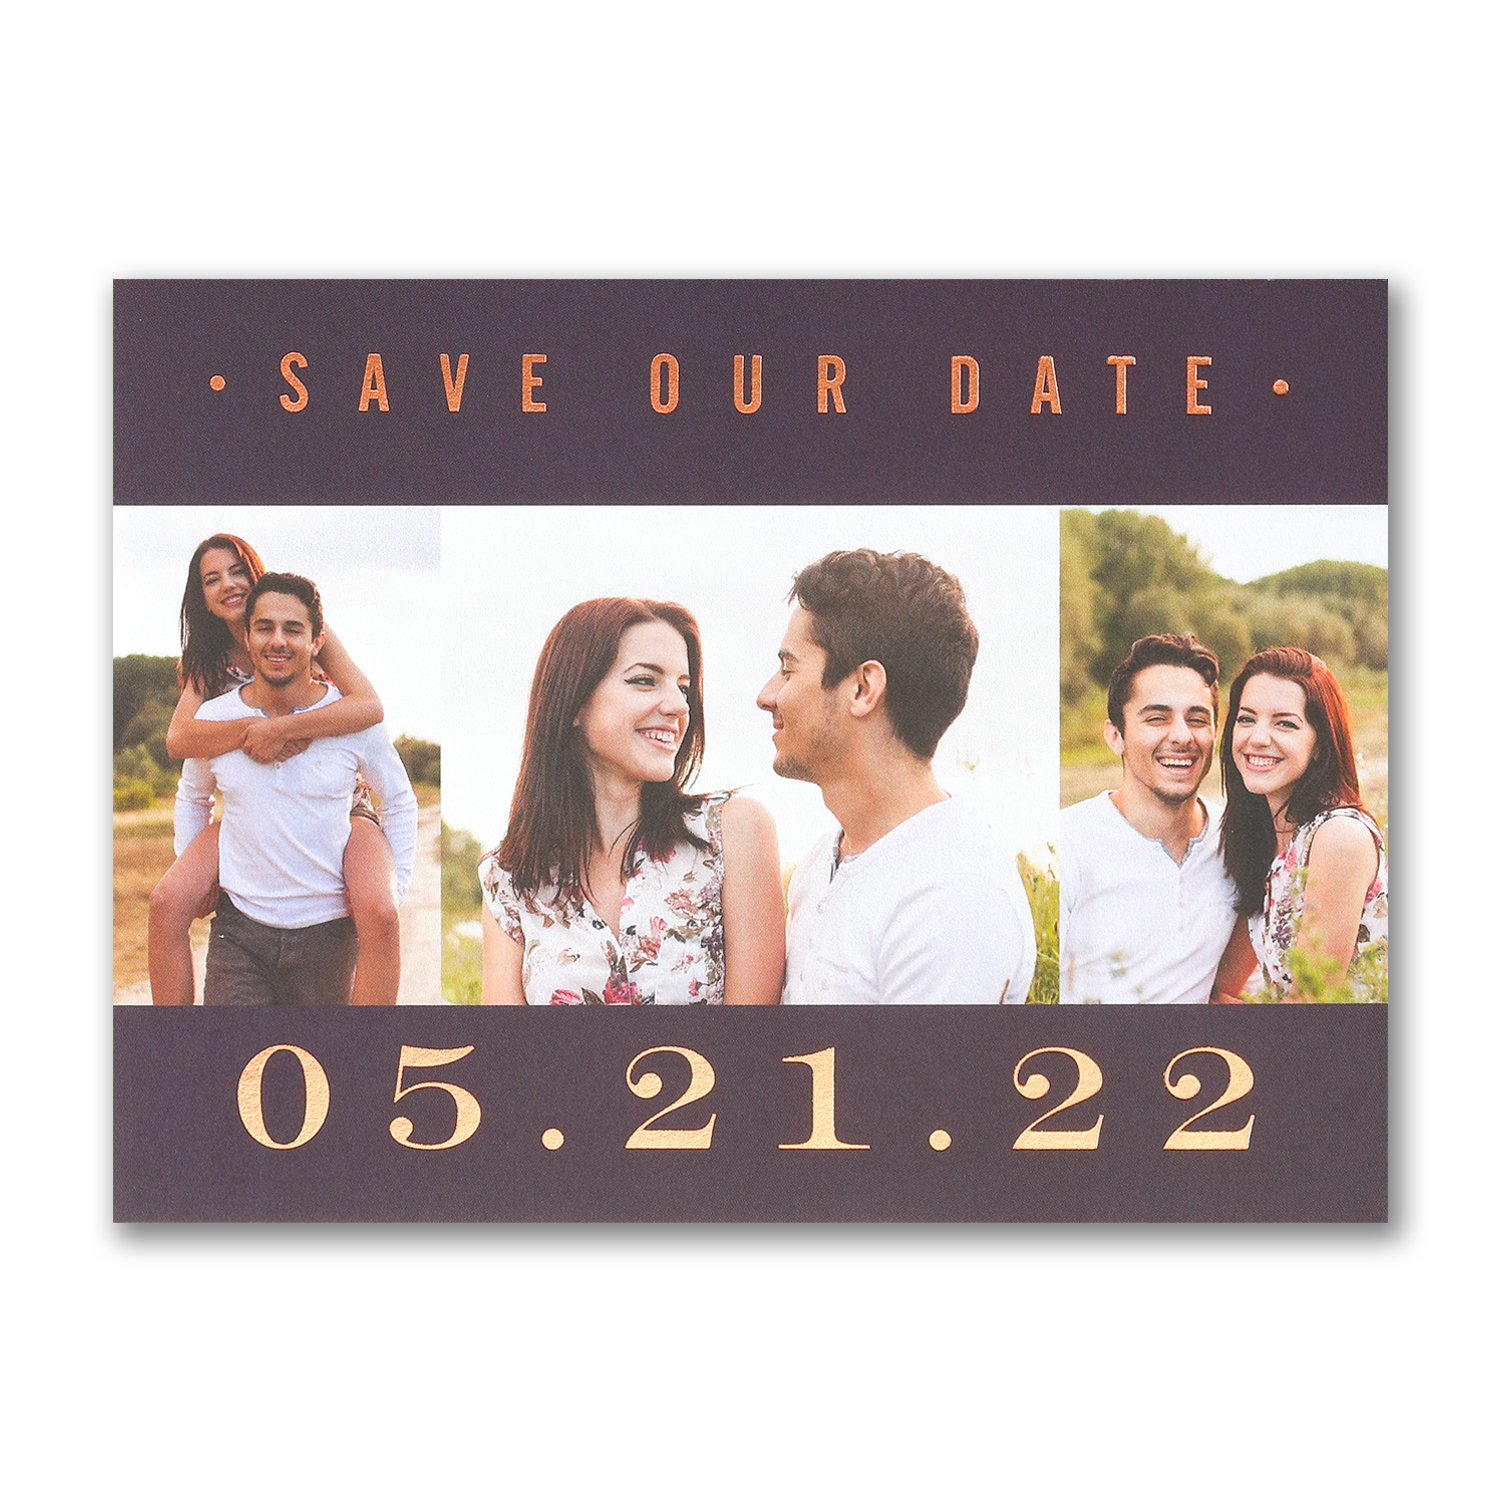 our love photo copper foil save the date carlson craft